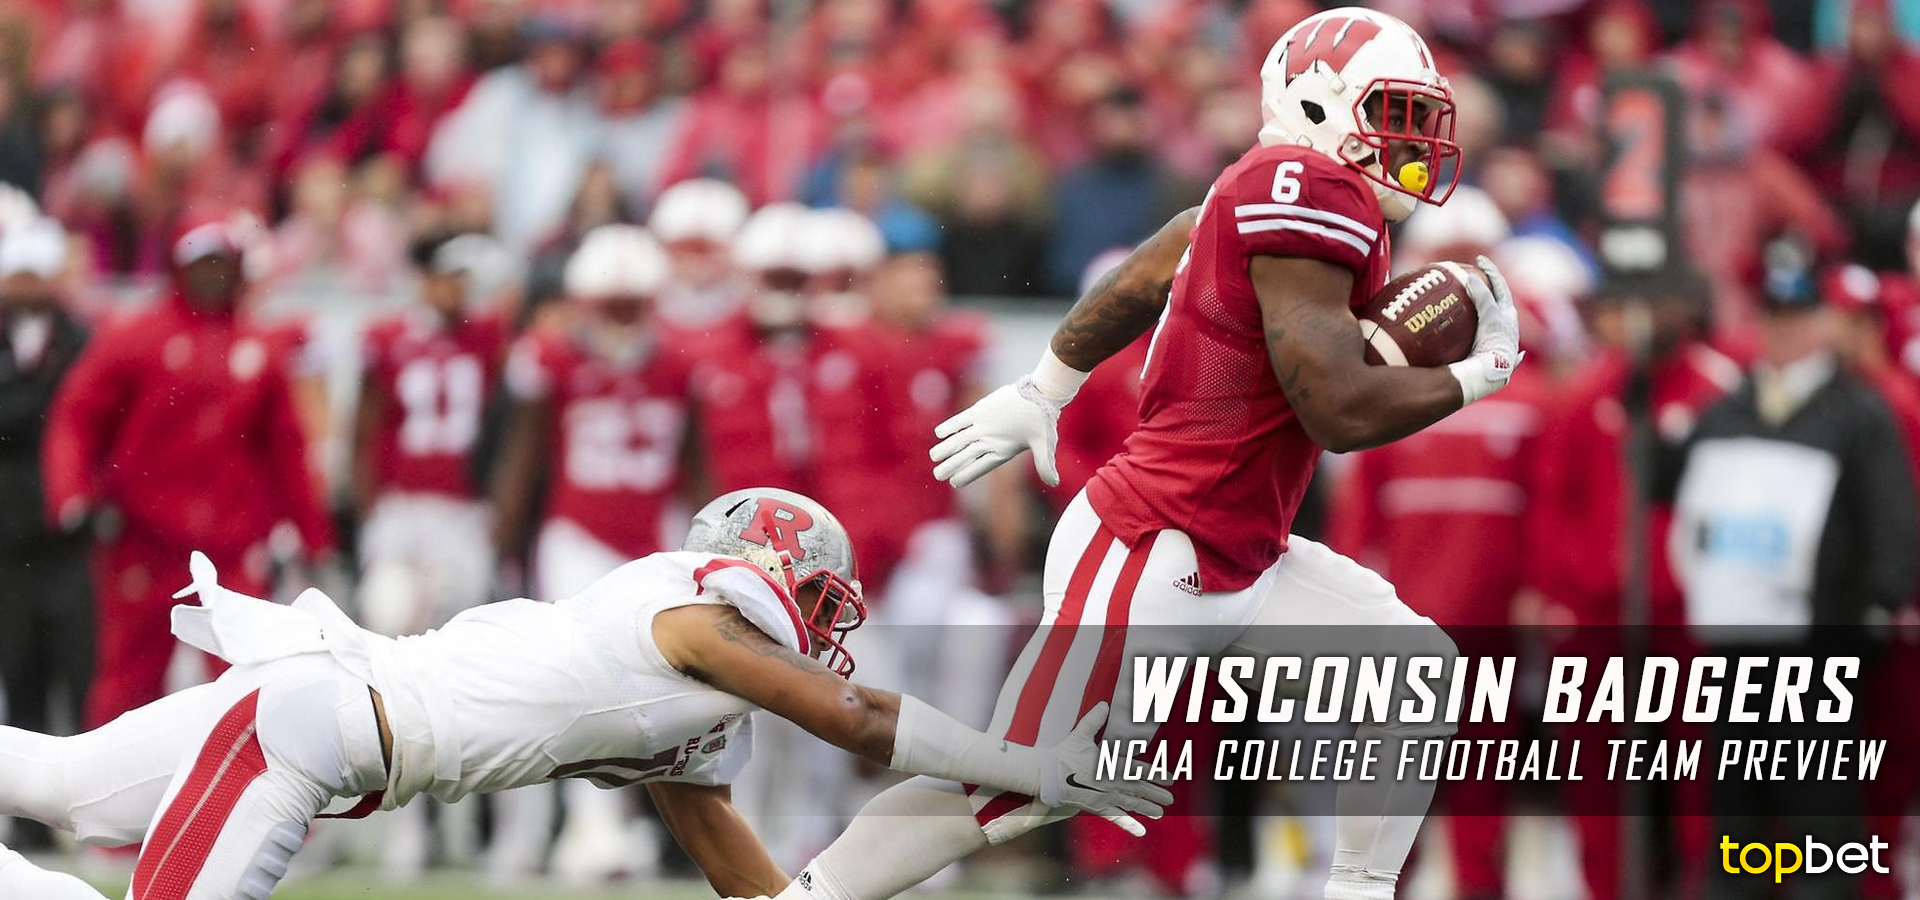 Wisconsin Badgers 2016 Football Team Preview